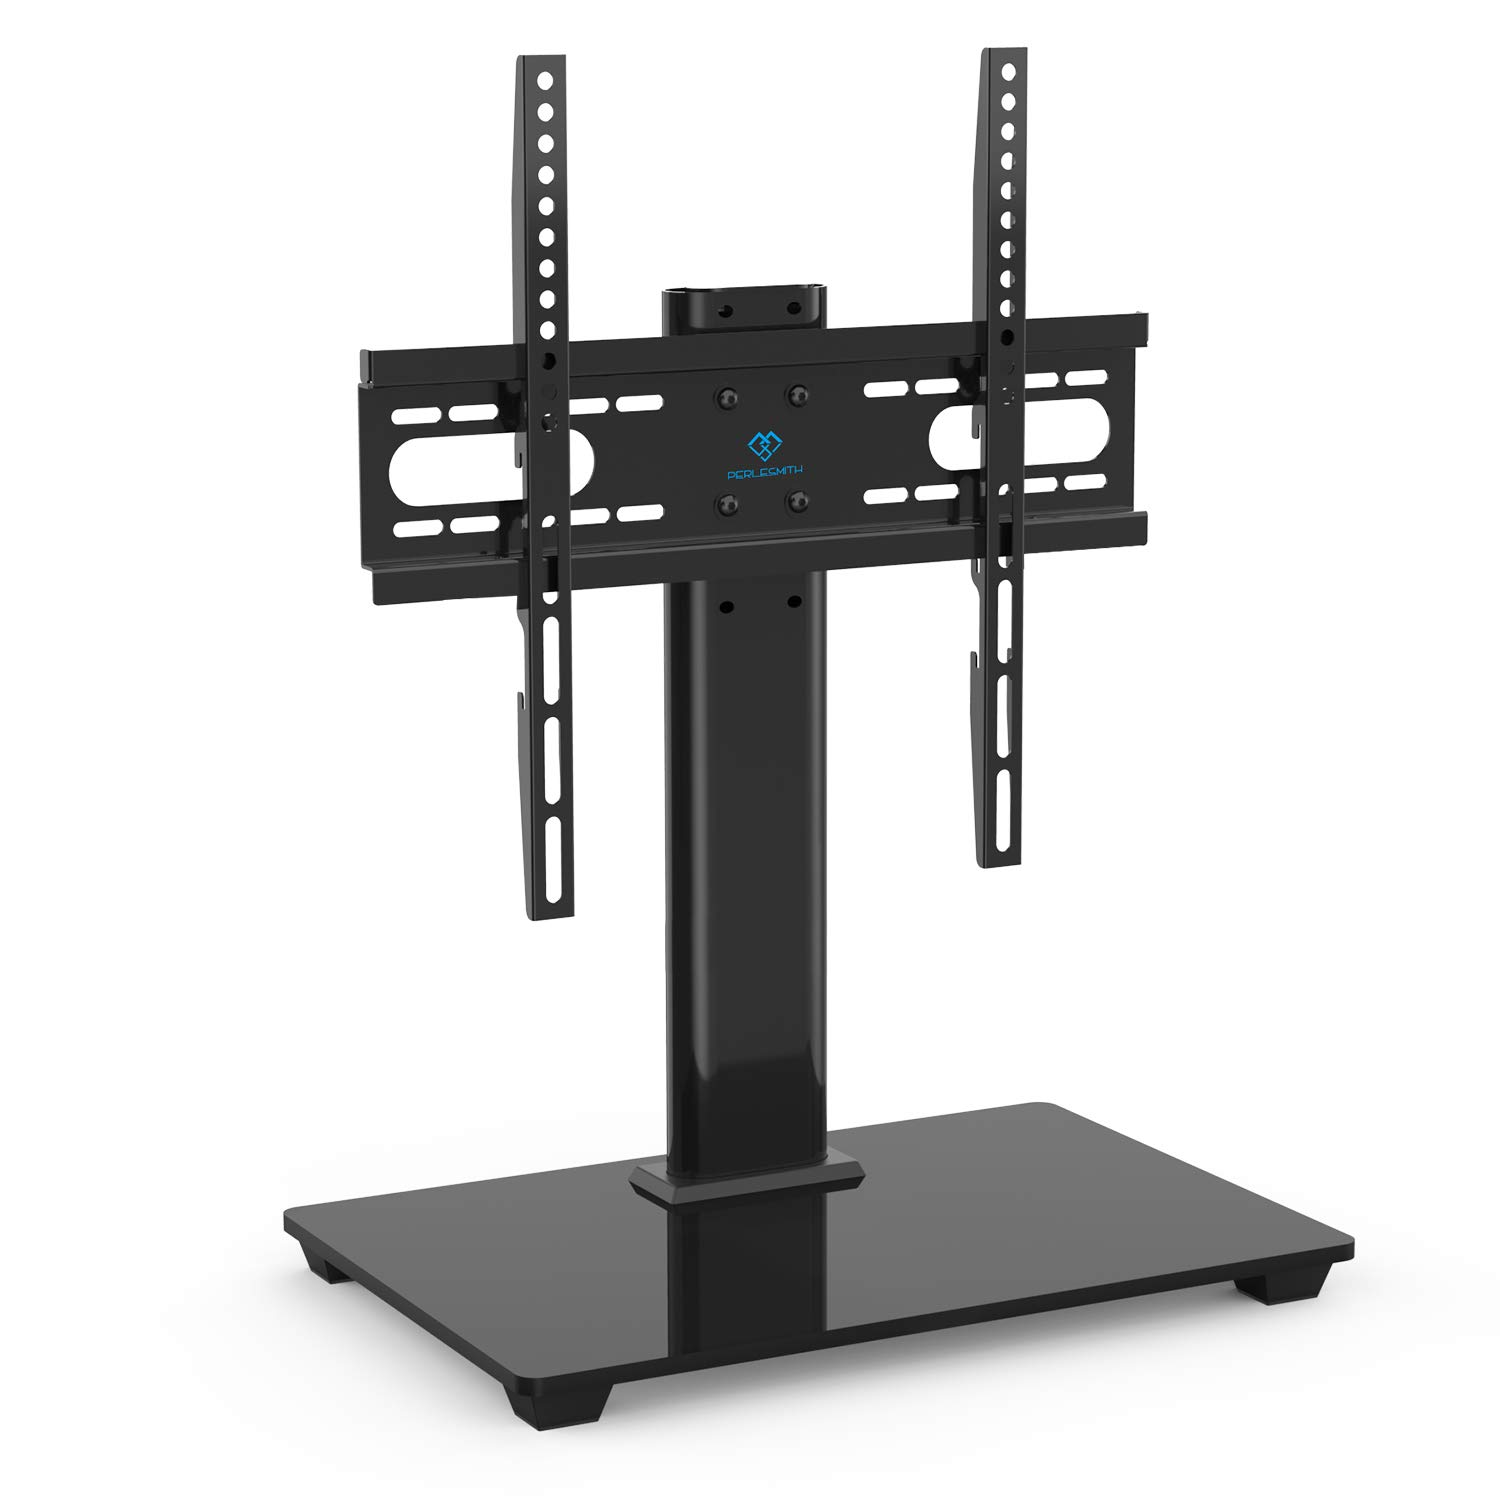 PERLESMITH Universal TV Stand - Table Top TV Stand for 37-55 inch LCD LED TVs - Height Adjustable TV Base Stand with Tempered Glass Base & Wire Management, VESA 400x400mm by PERLESMITH